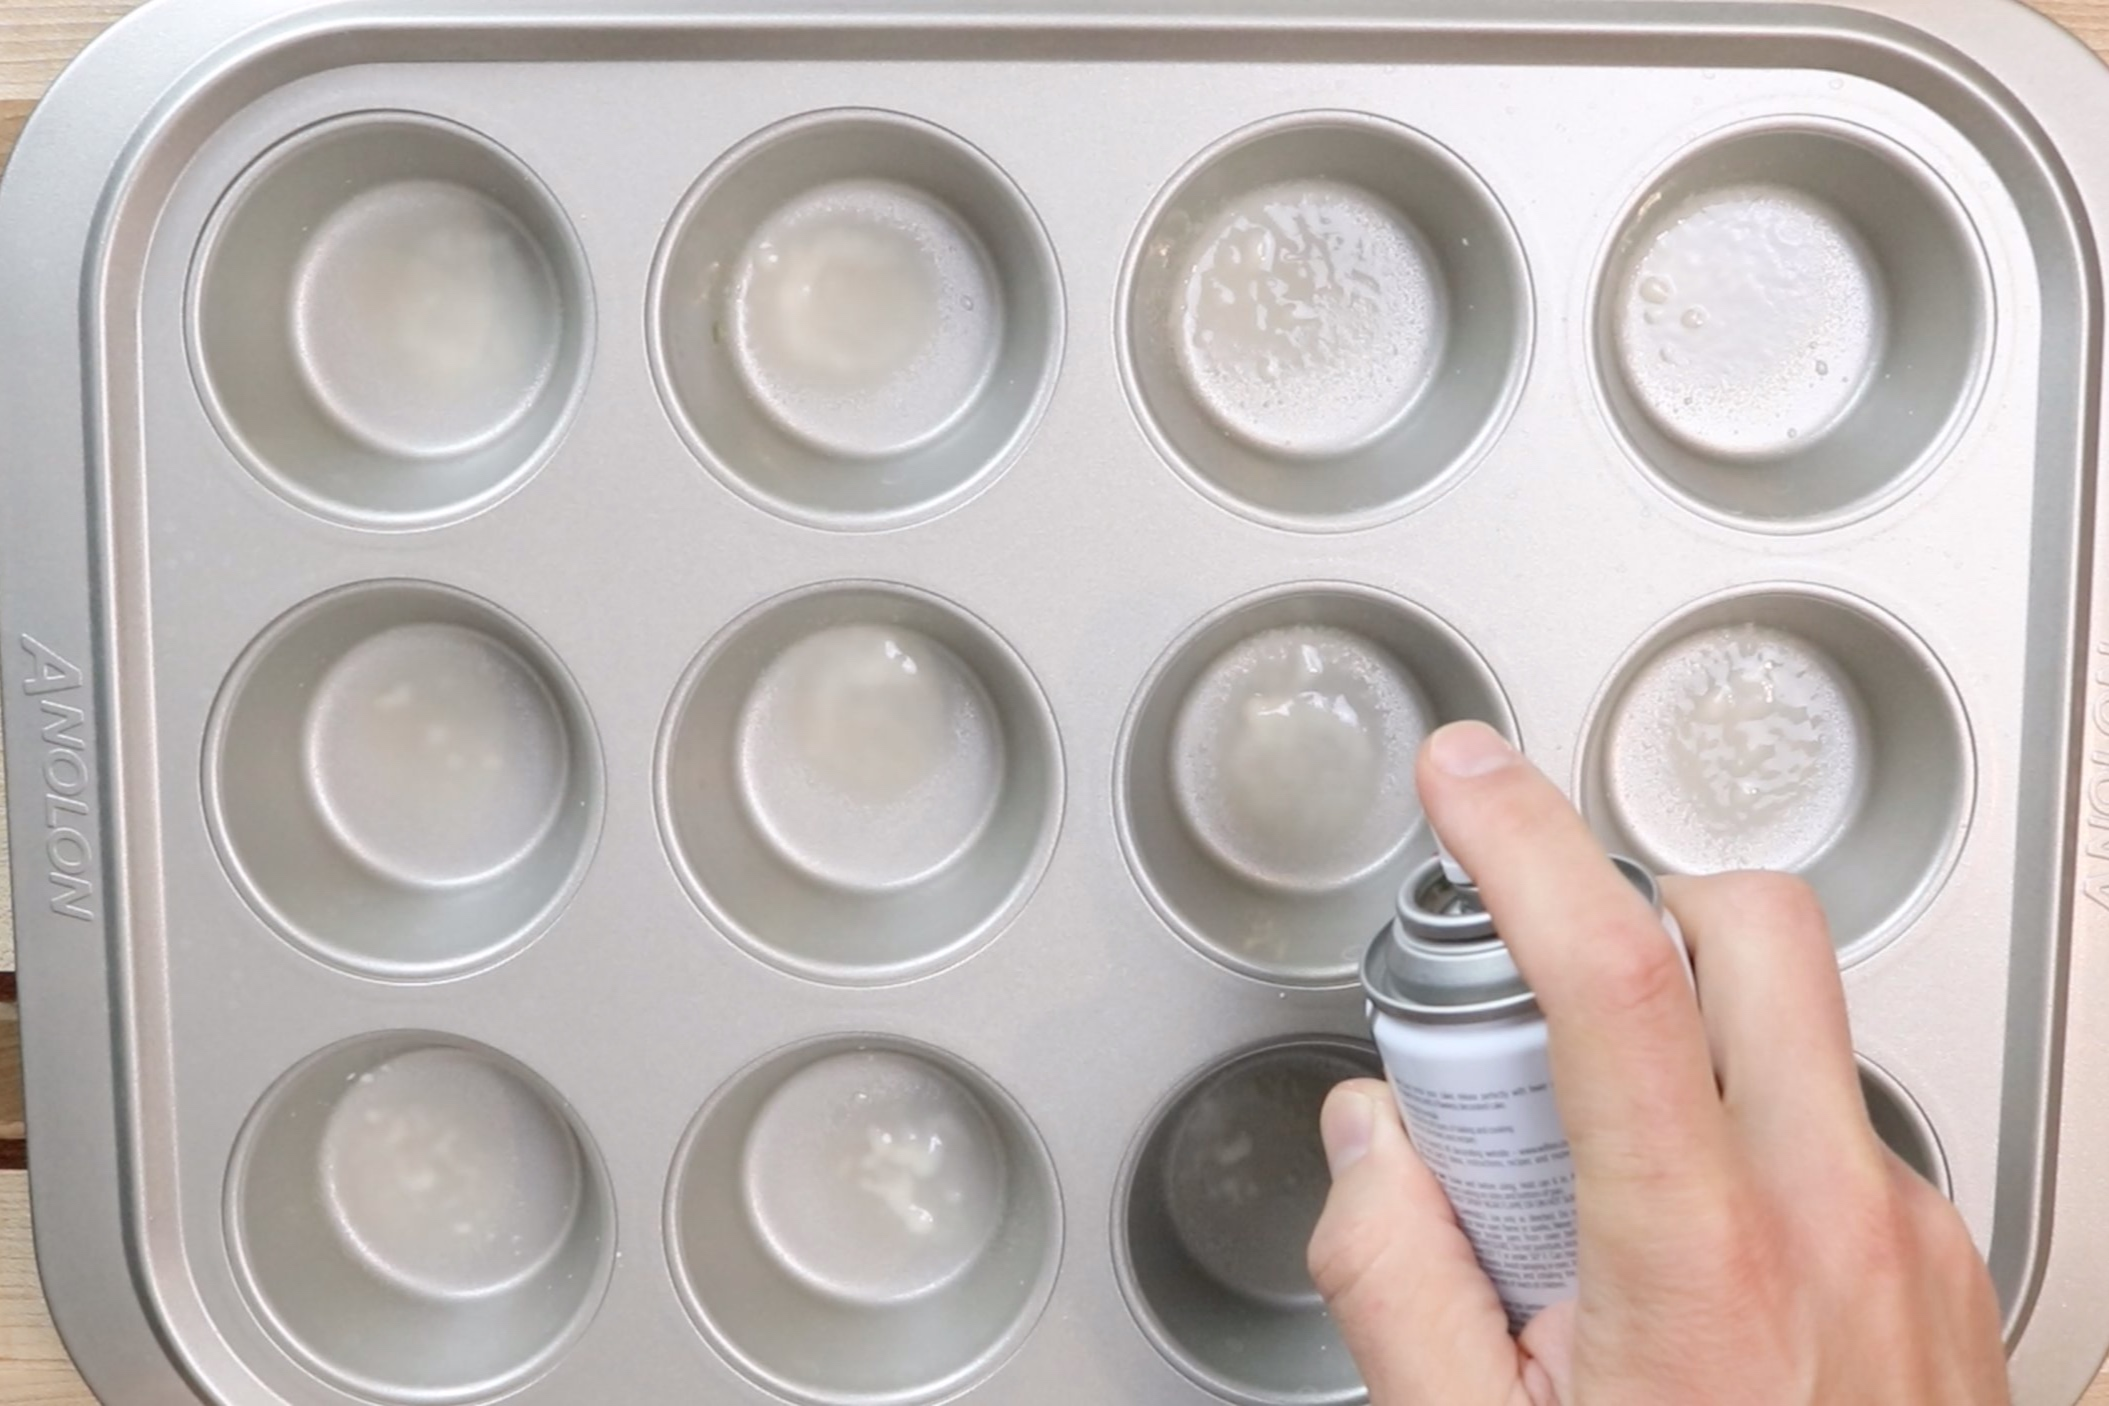 1. Preheat the oven to 350 degrees and spray a 12-cup muffin tin with baking spray. Pour some sugar in a bowl and set aside for rolling. -